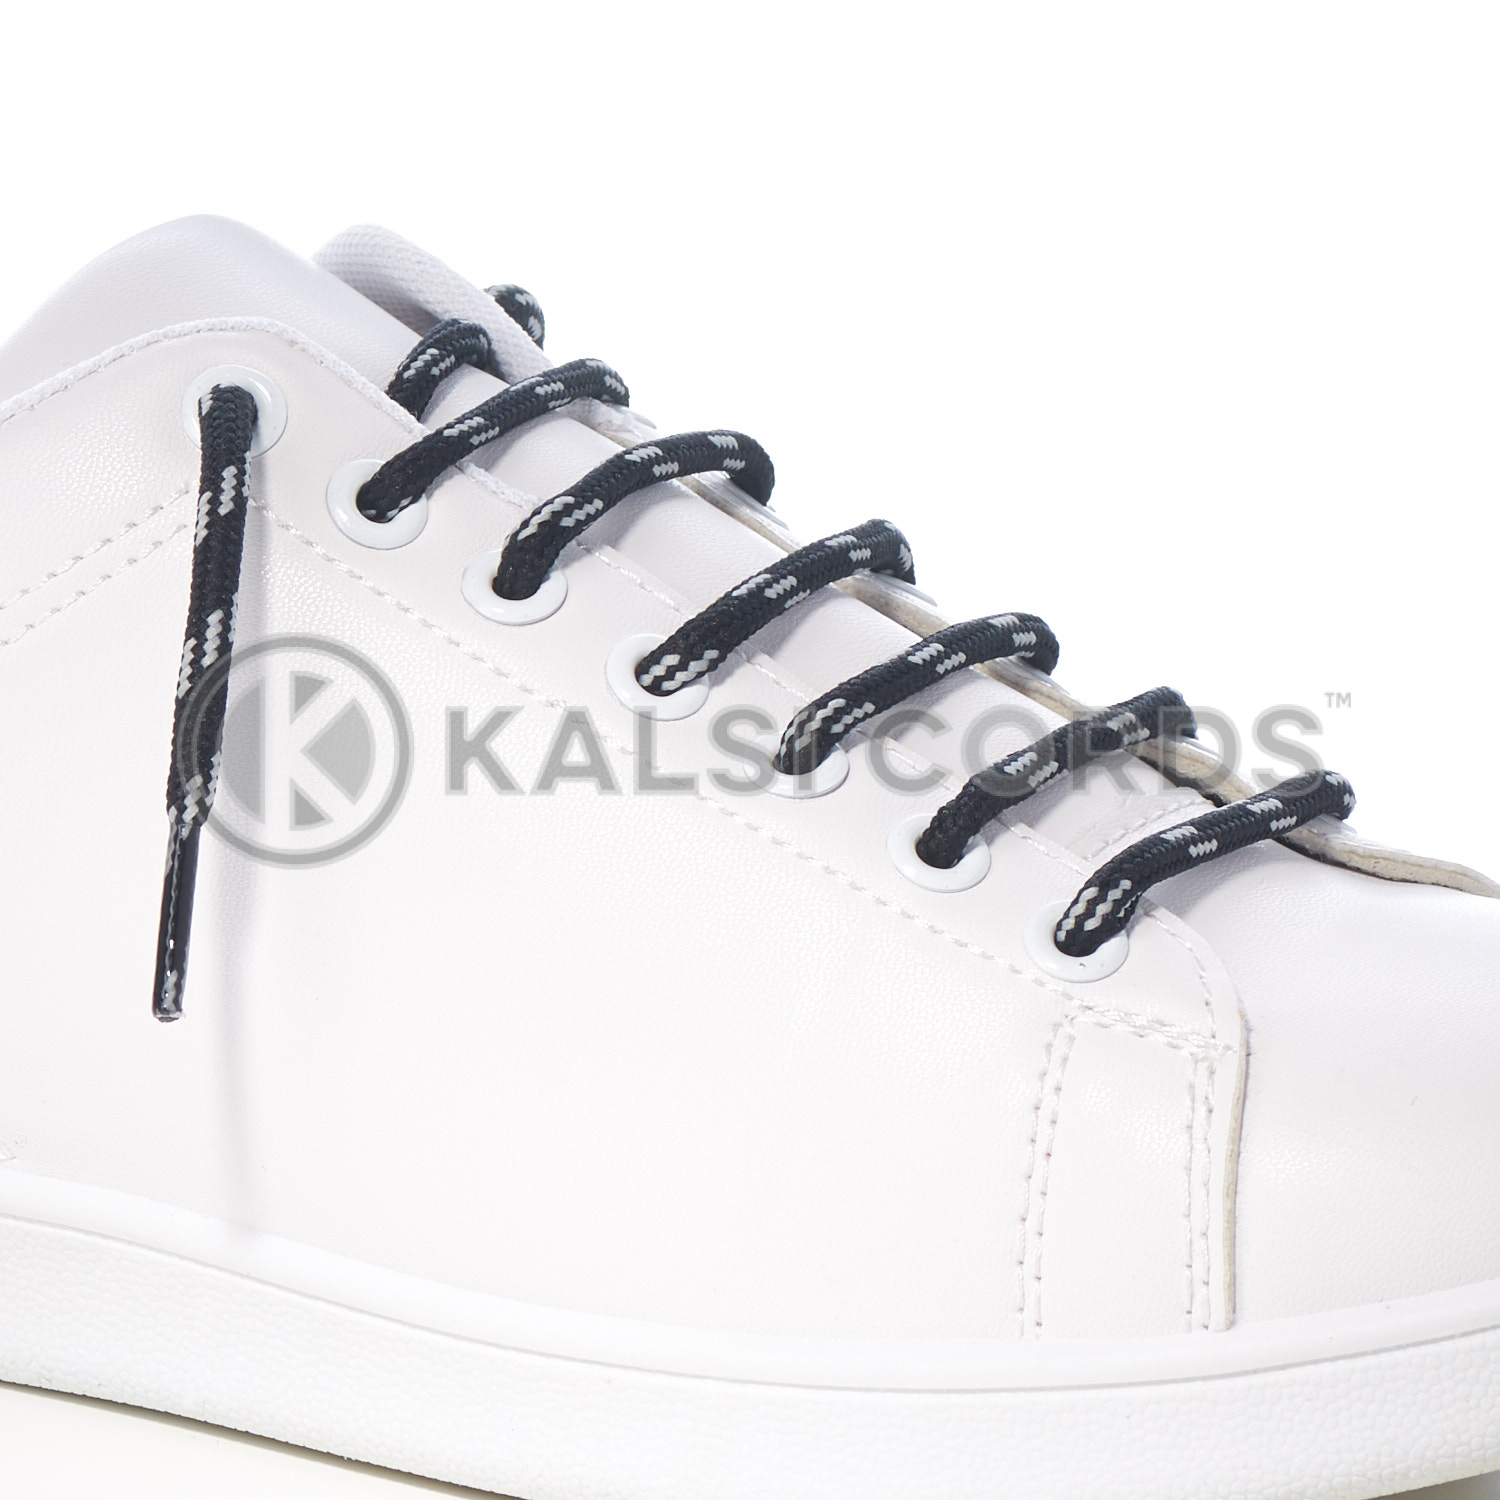 T621 5mm Round Cord Shoe Lace Black Light Grey 4 Fleck Kids Trainers Adults Hiking Walking Boots Kalsi Cords